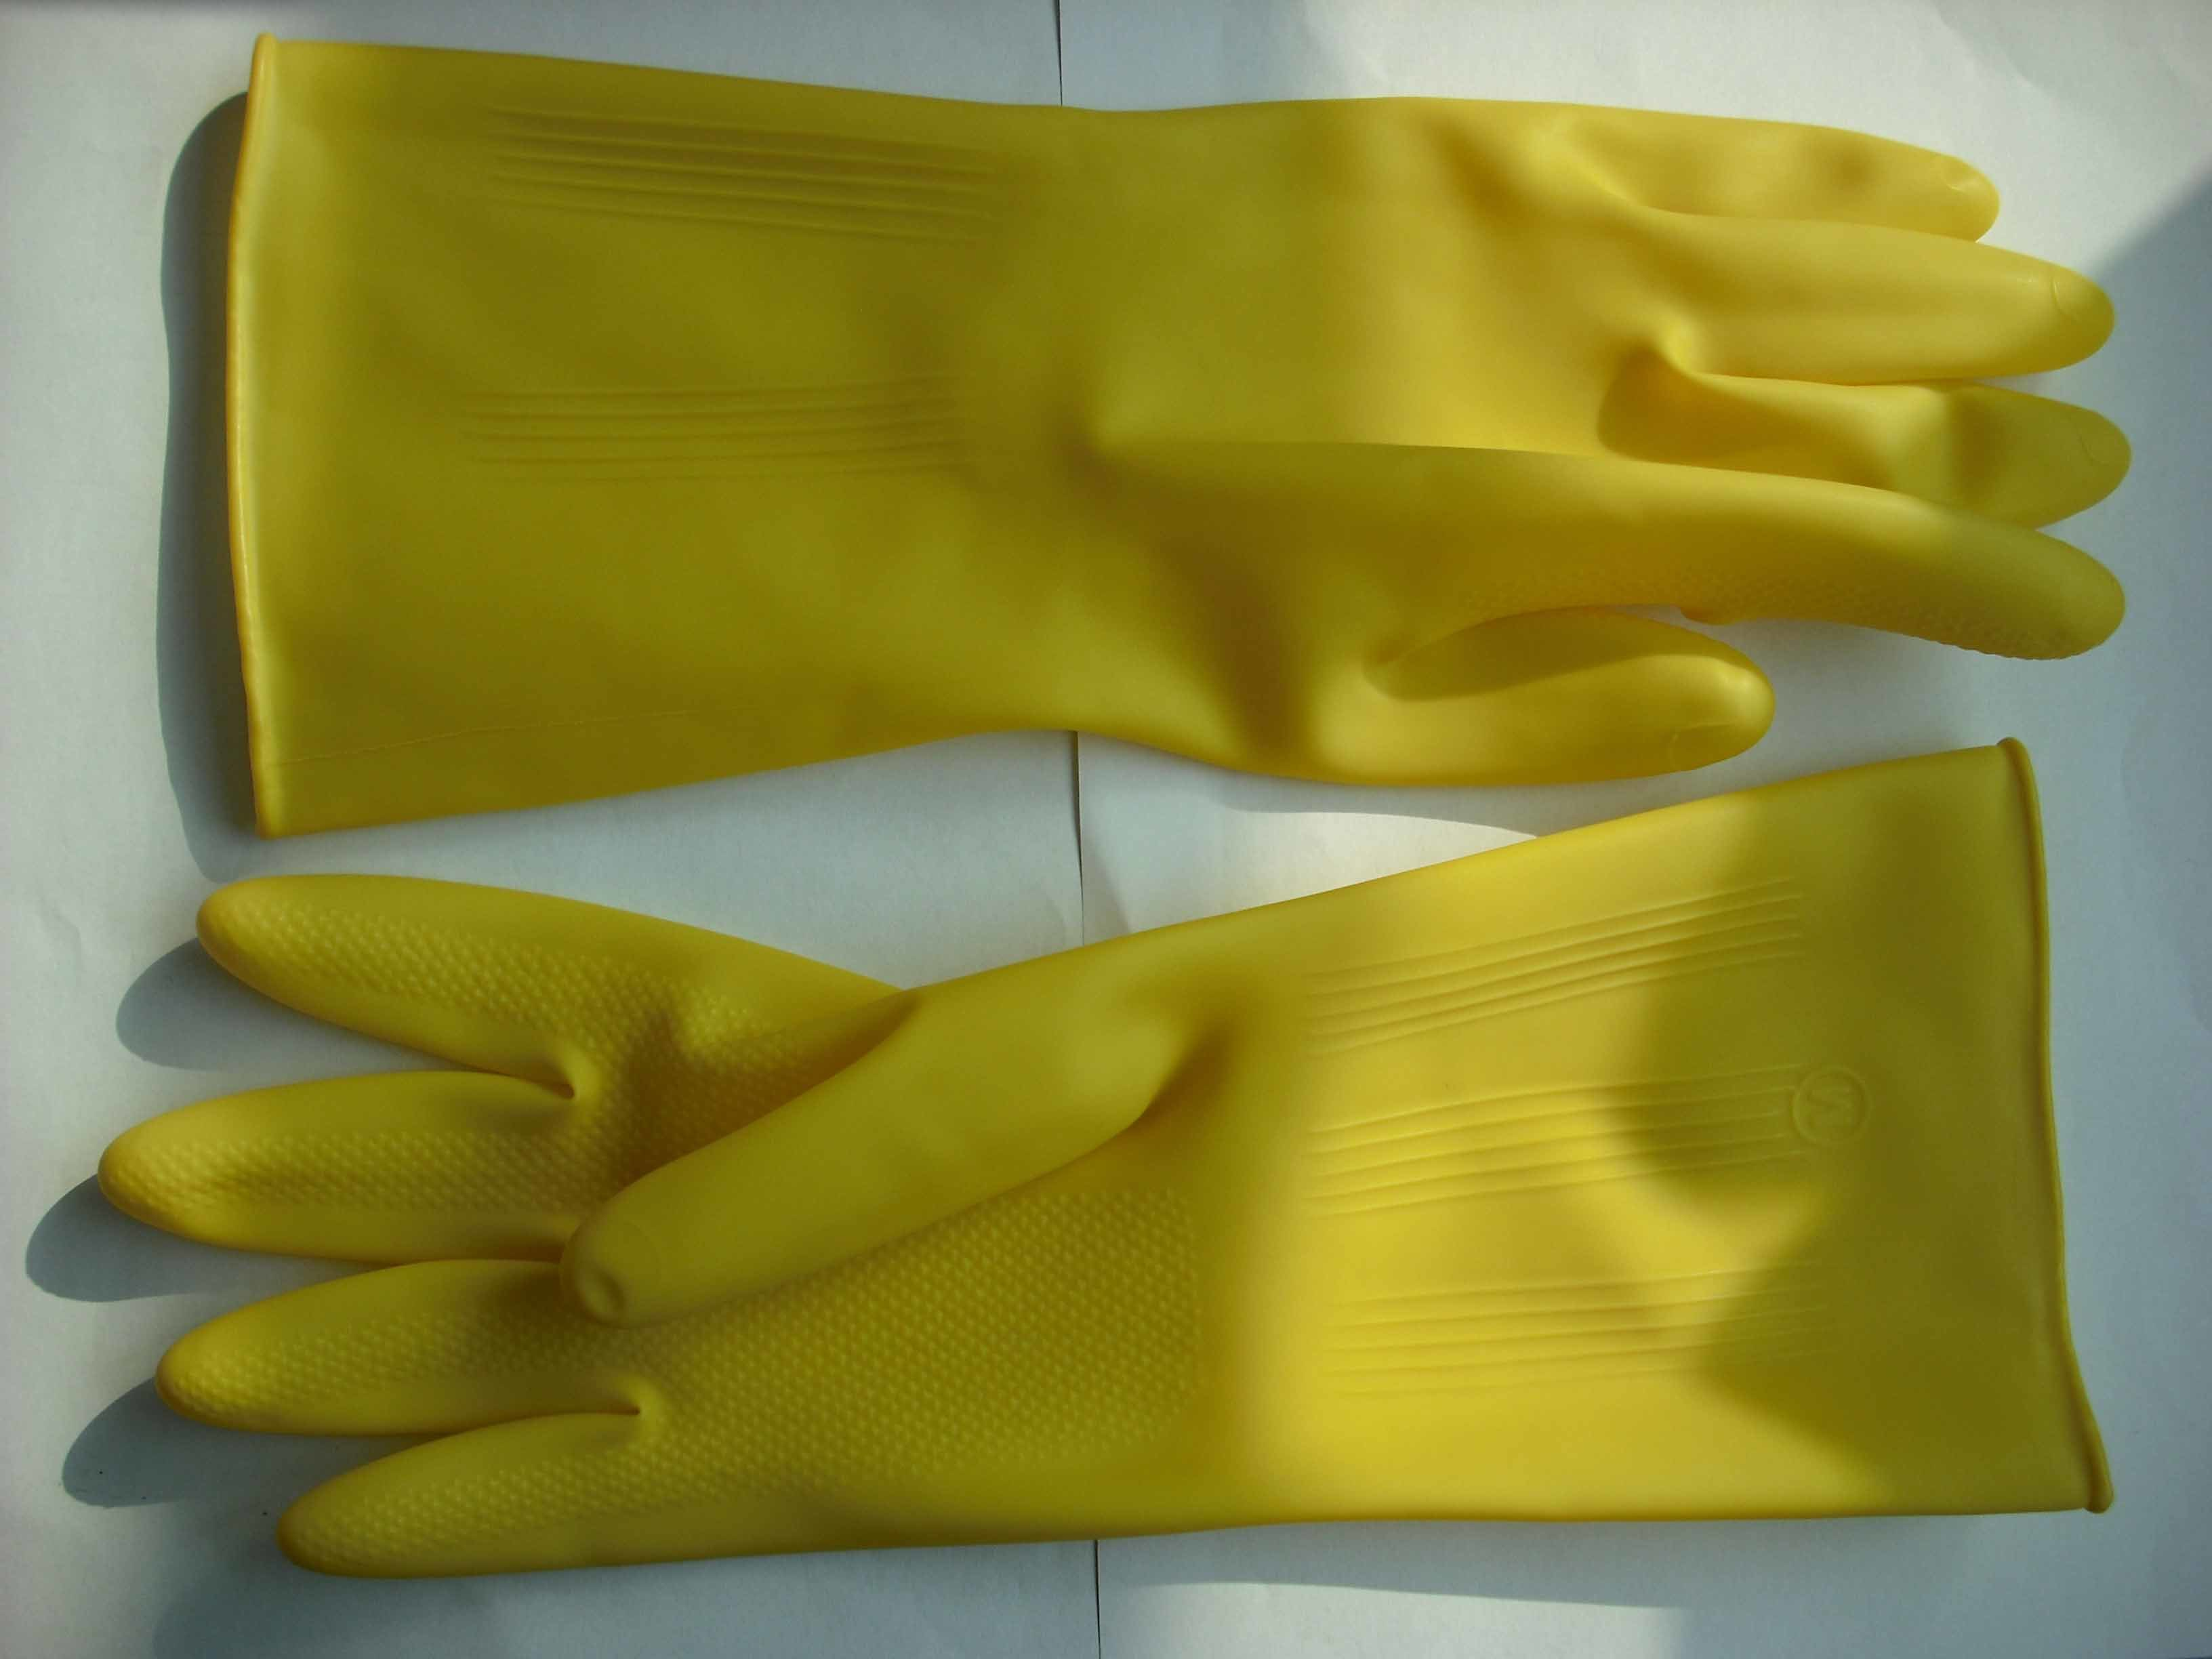 32.5cm Long Cuff Latex Cleaning Gloves/ Rubber Household Gloves with Cotton Lining Inside/ Keep Warm Rubber Gloves